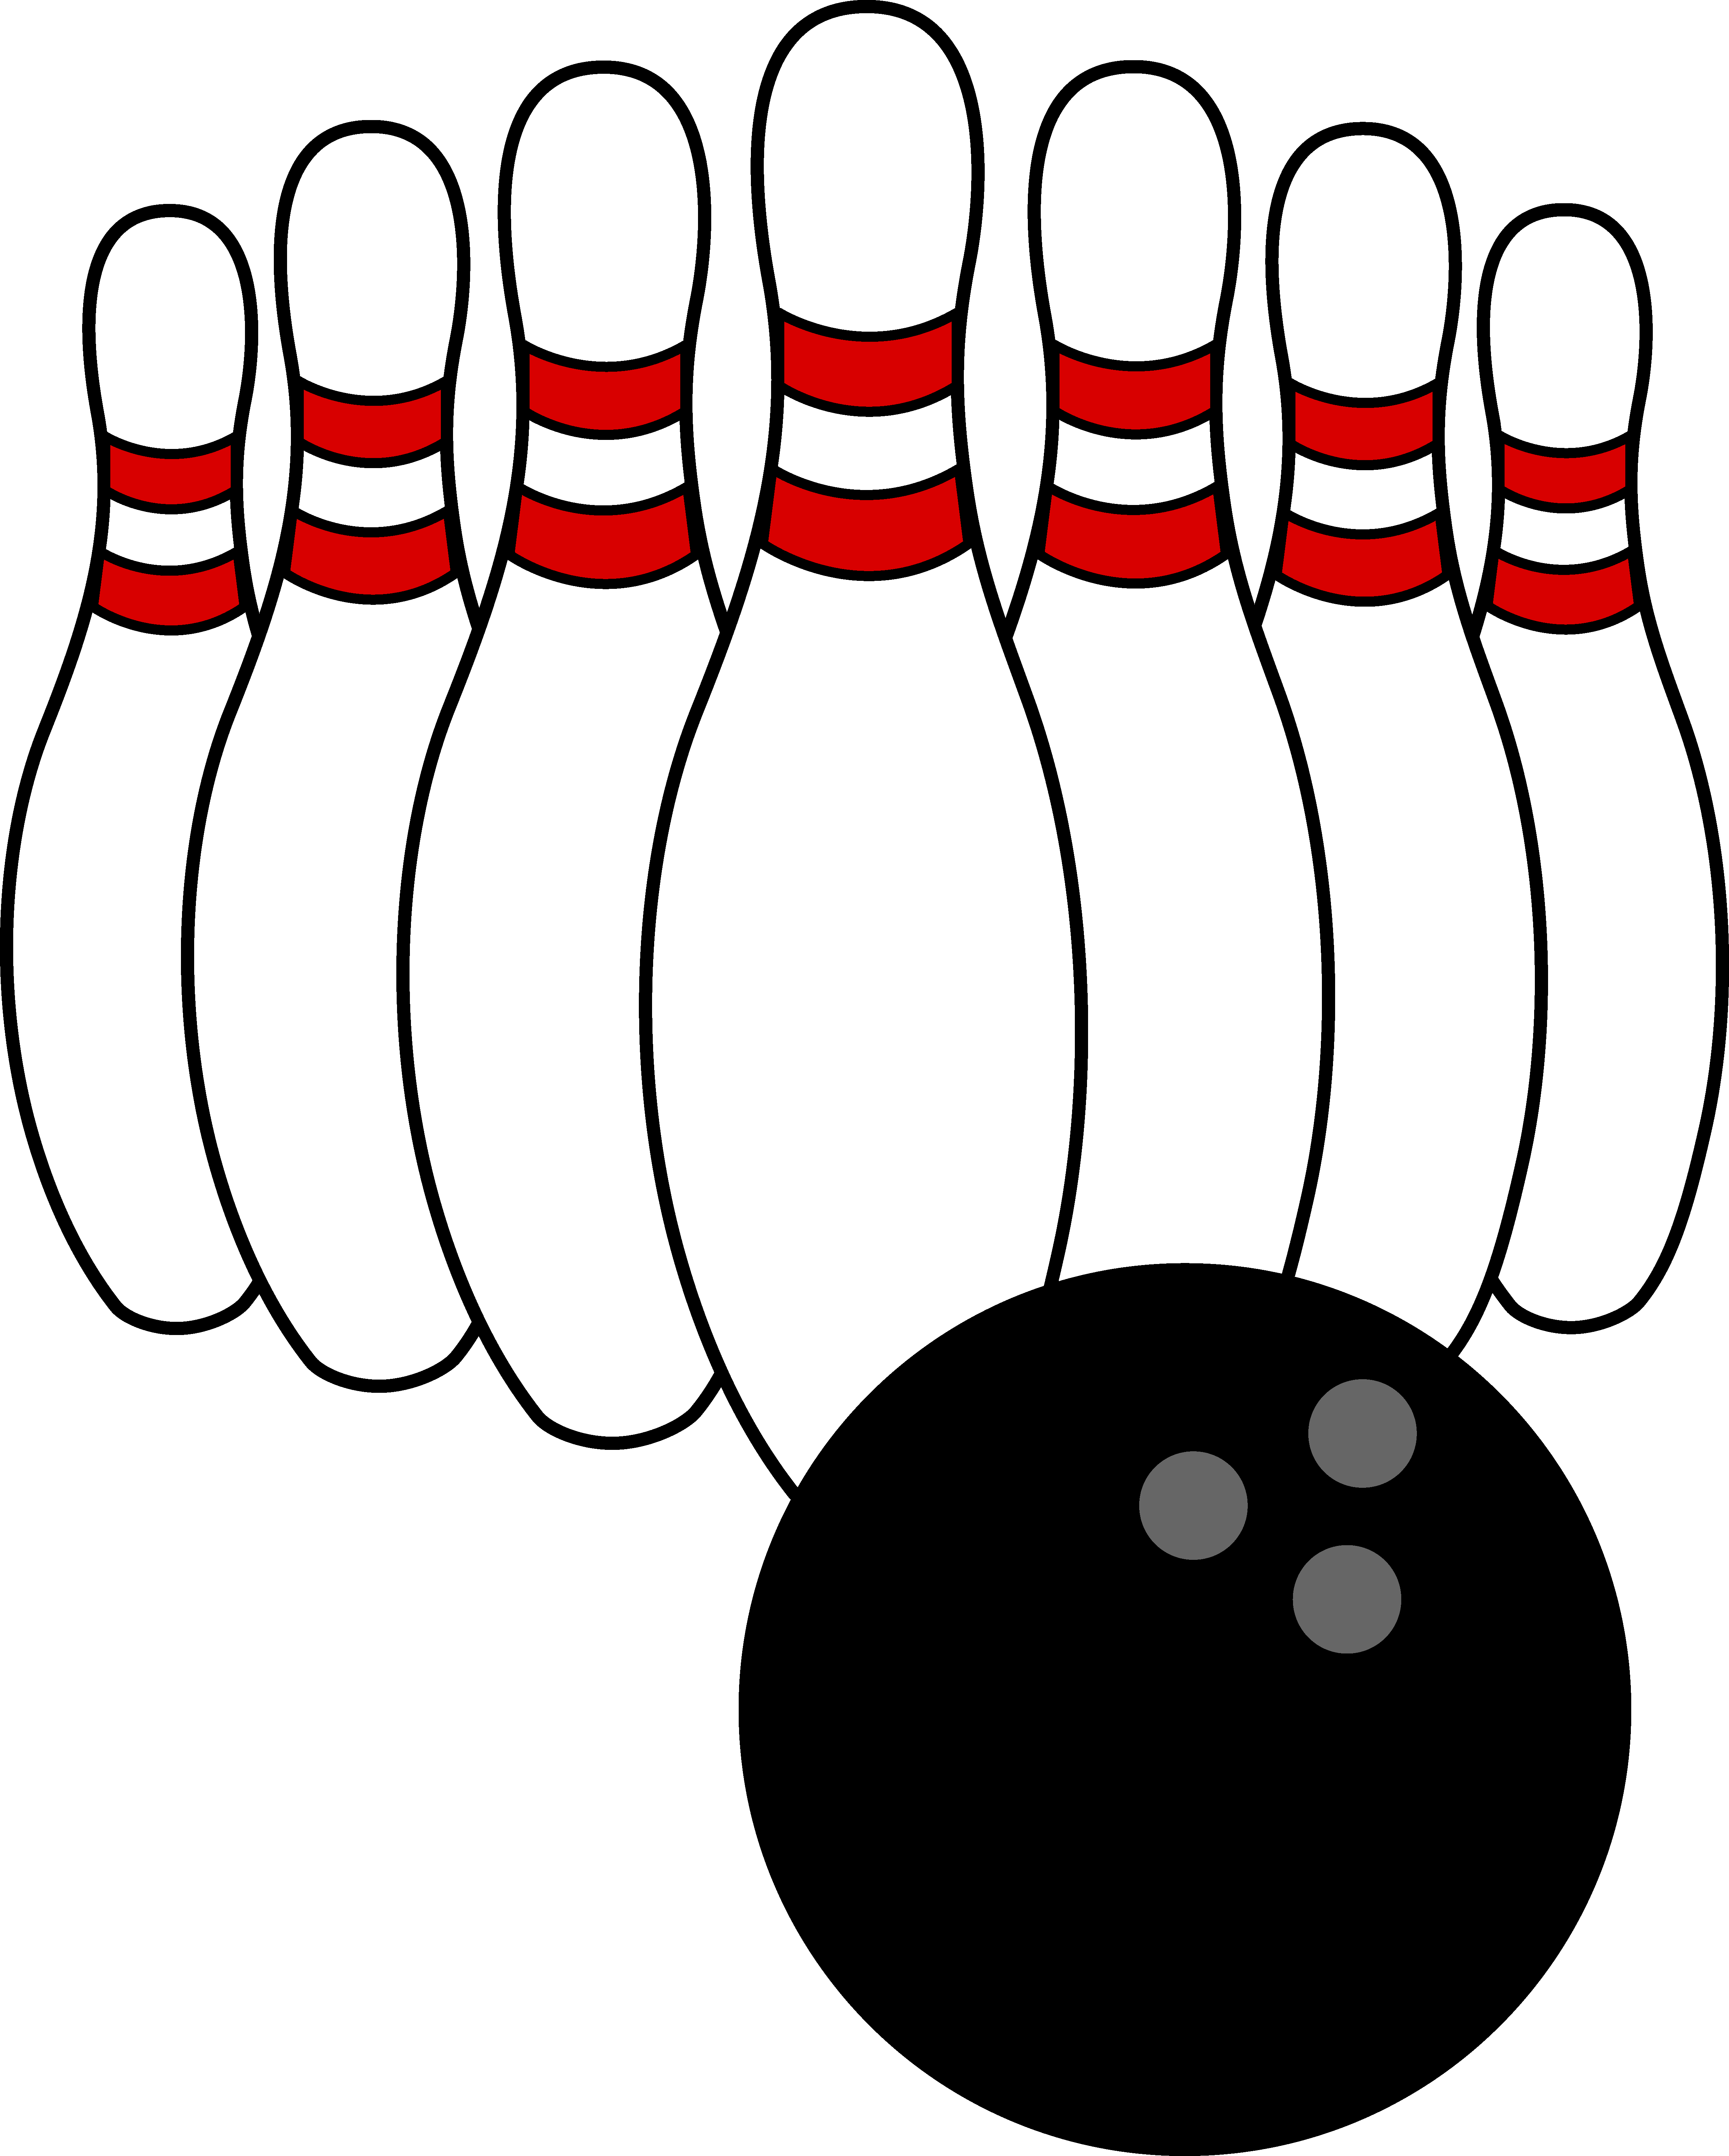 Free animated bowling clipart. Graphic download clip art